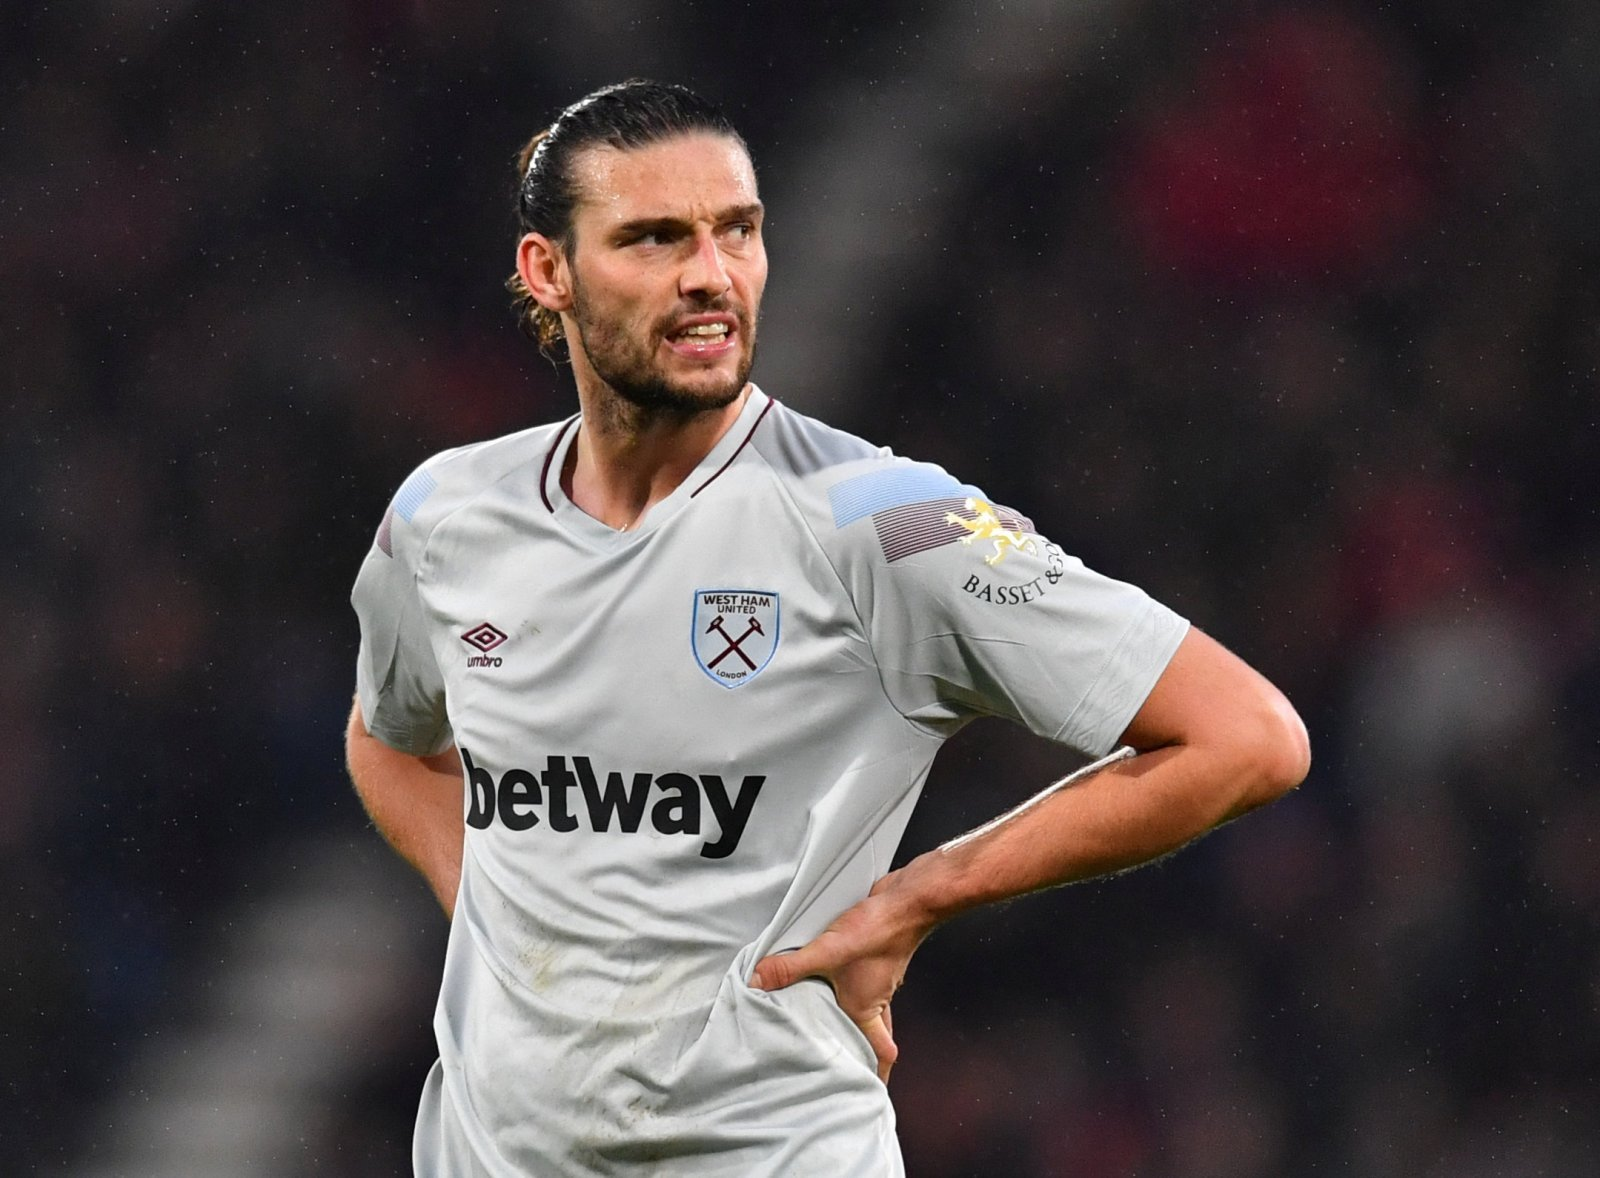 Newcastle: Possible date set for Andy Carroll's return